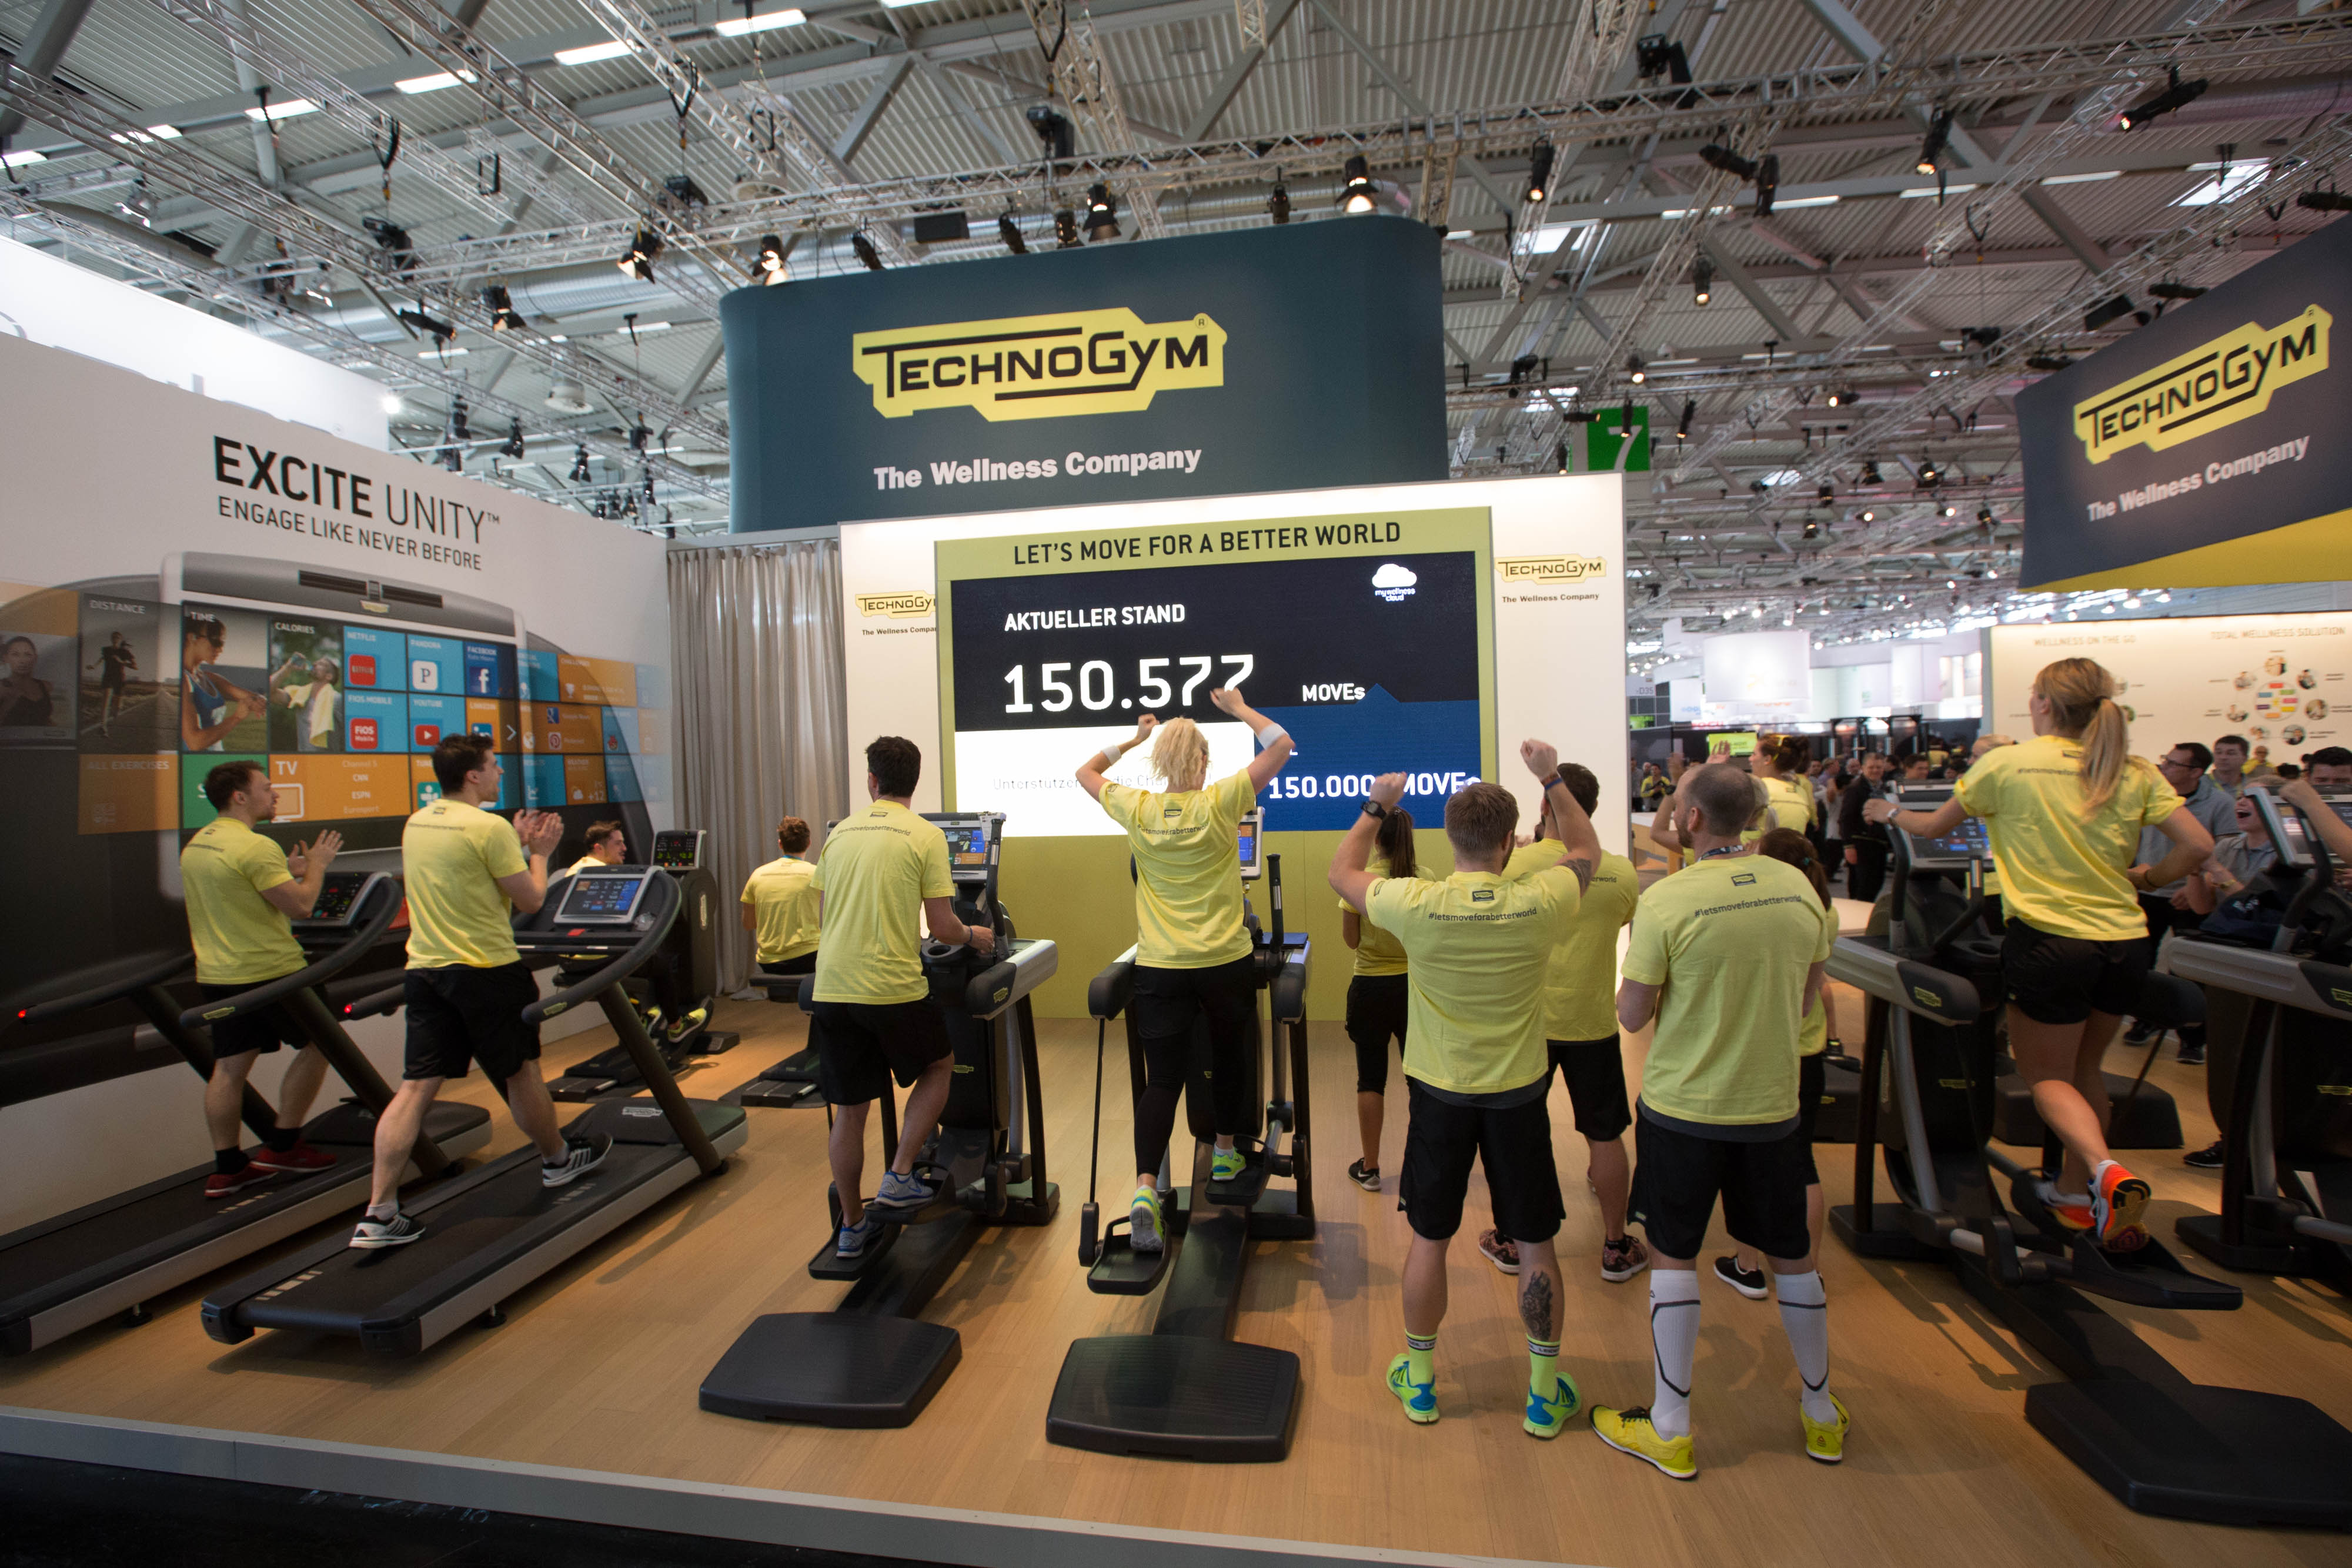 Technogym helps Operators Engage and Retain Members whilst Impacting Social Causes